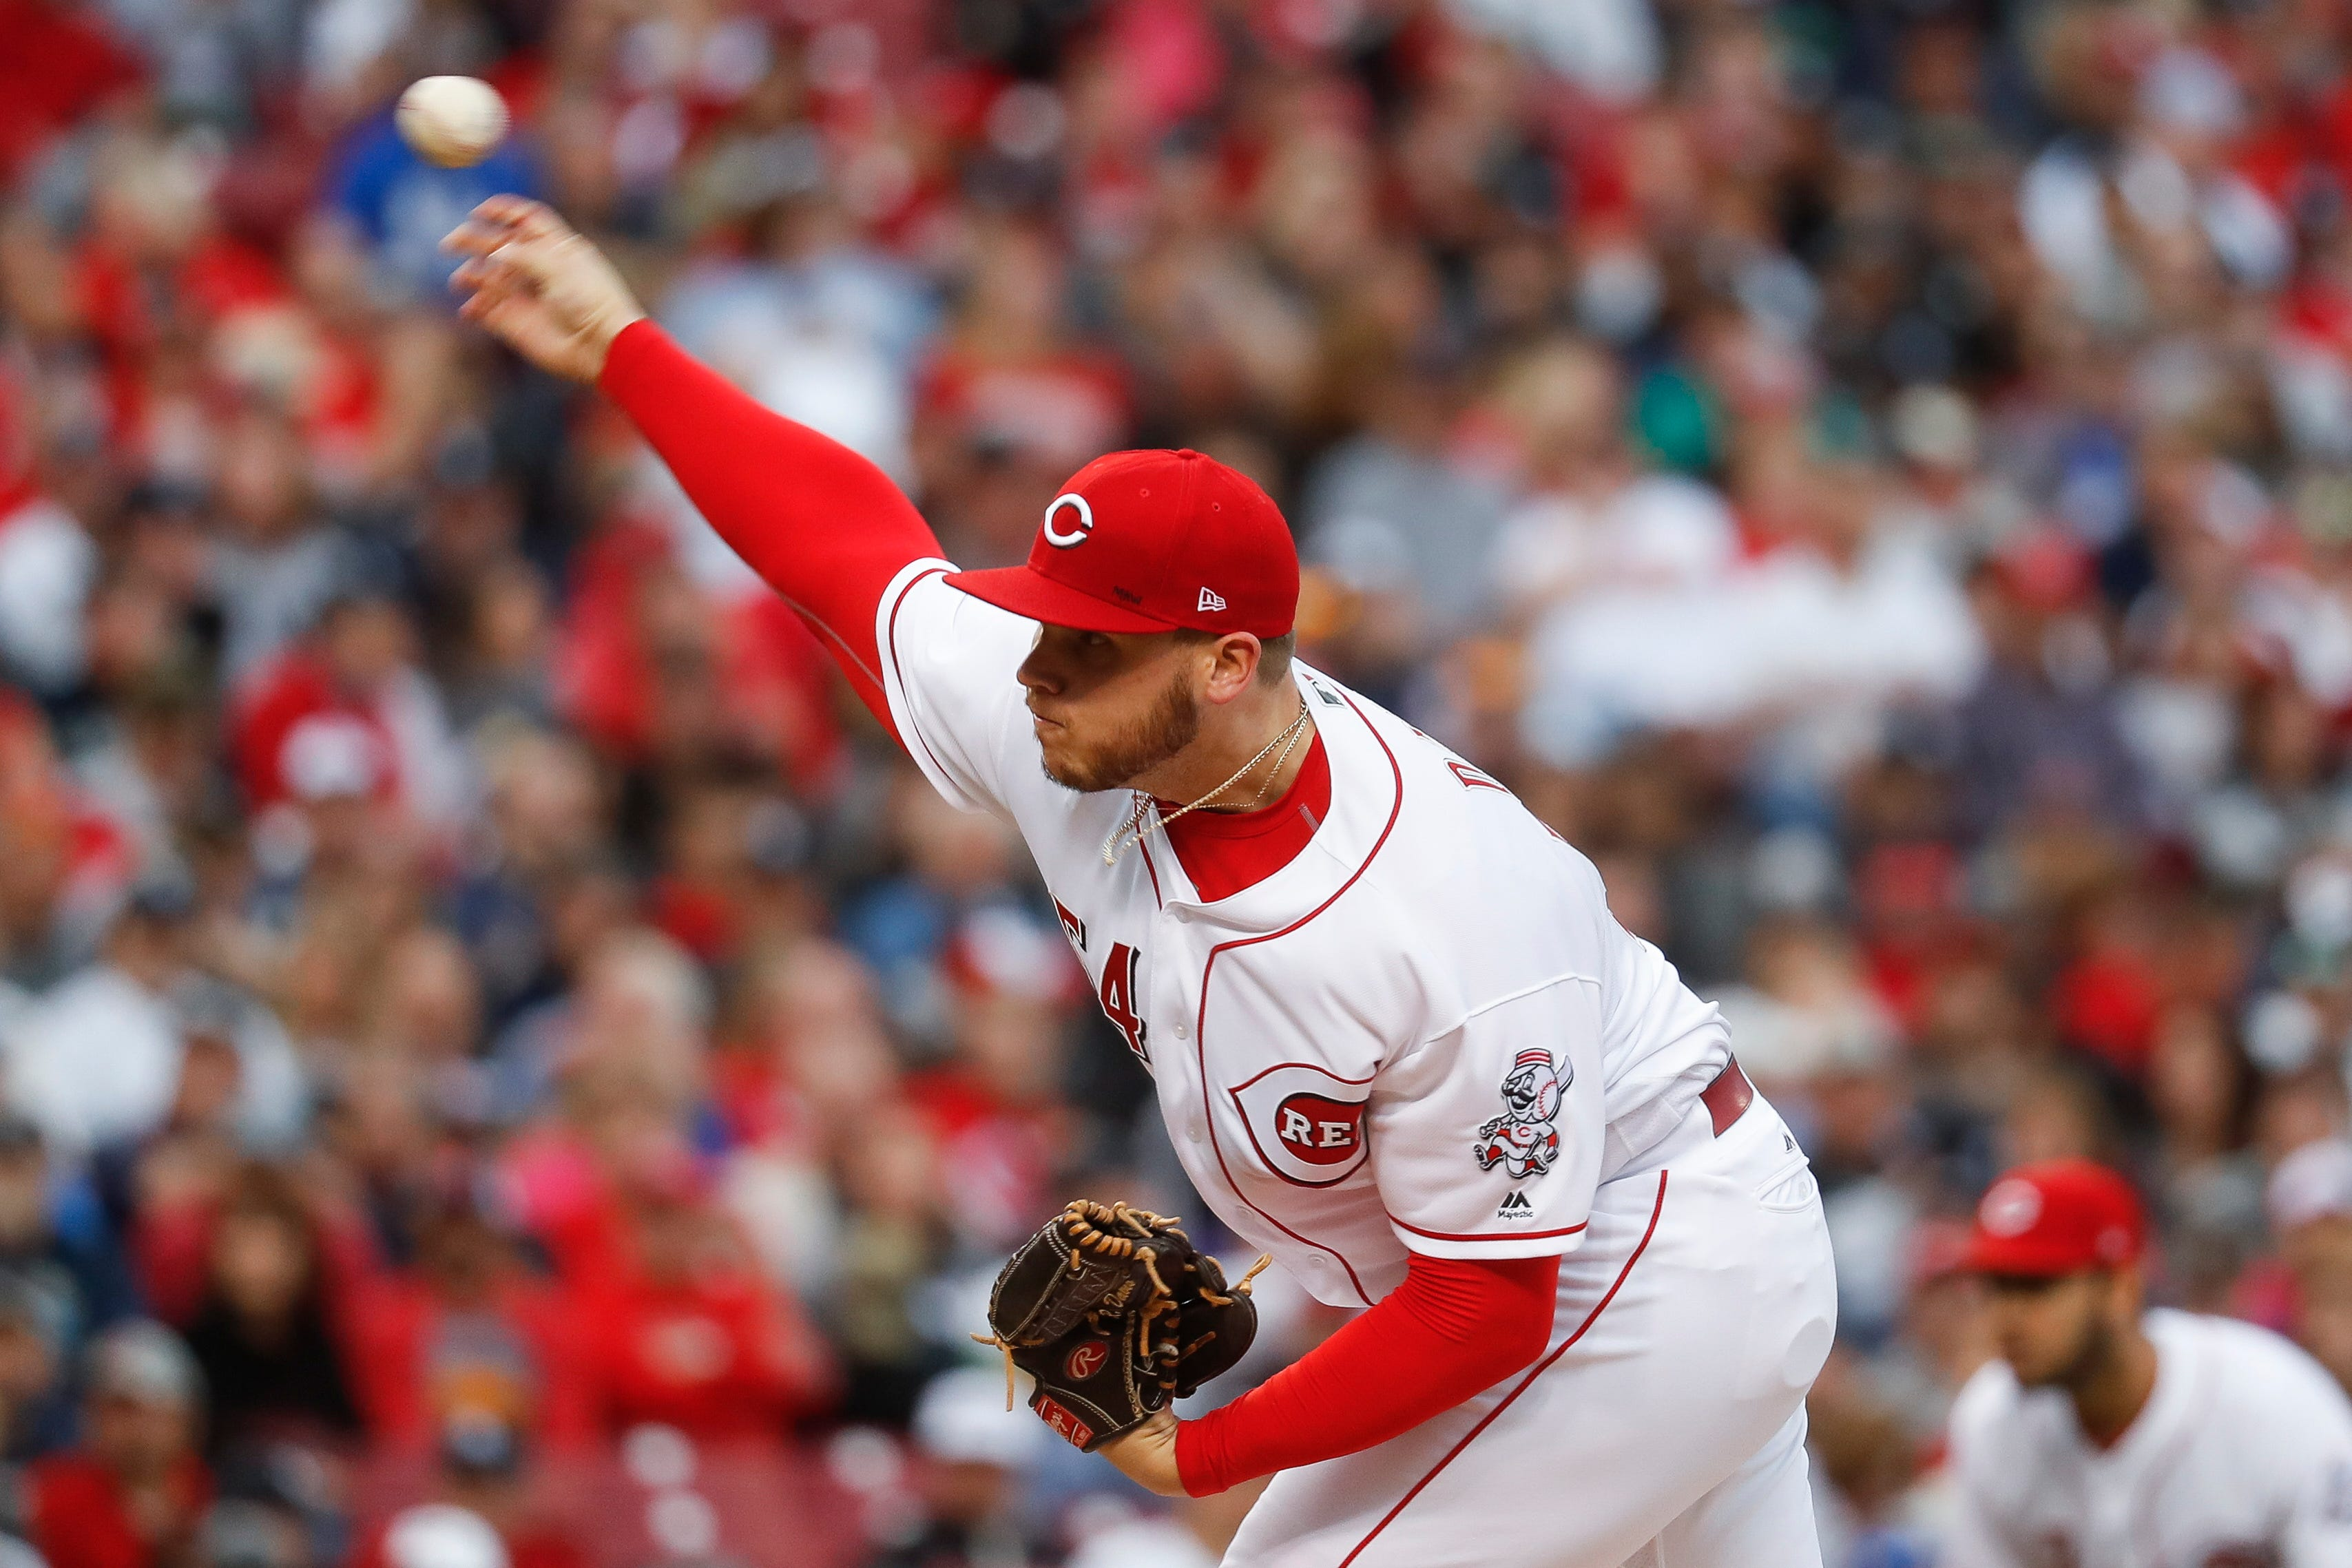 Reds notes: Rookie Davis to avoid disabled list